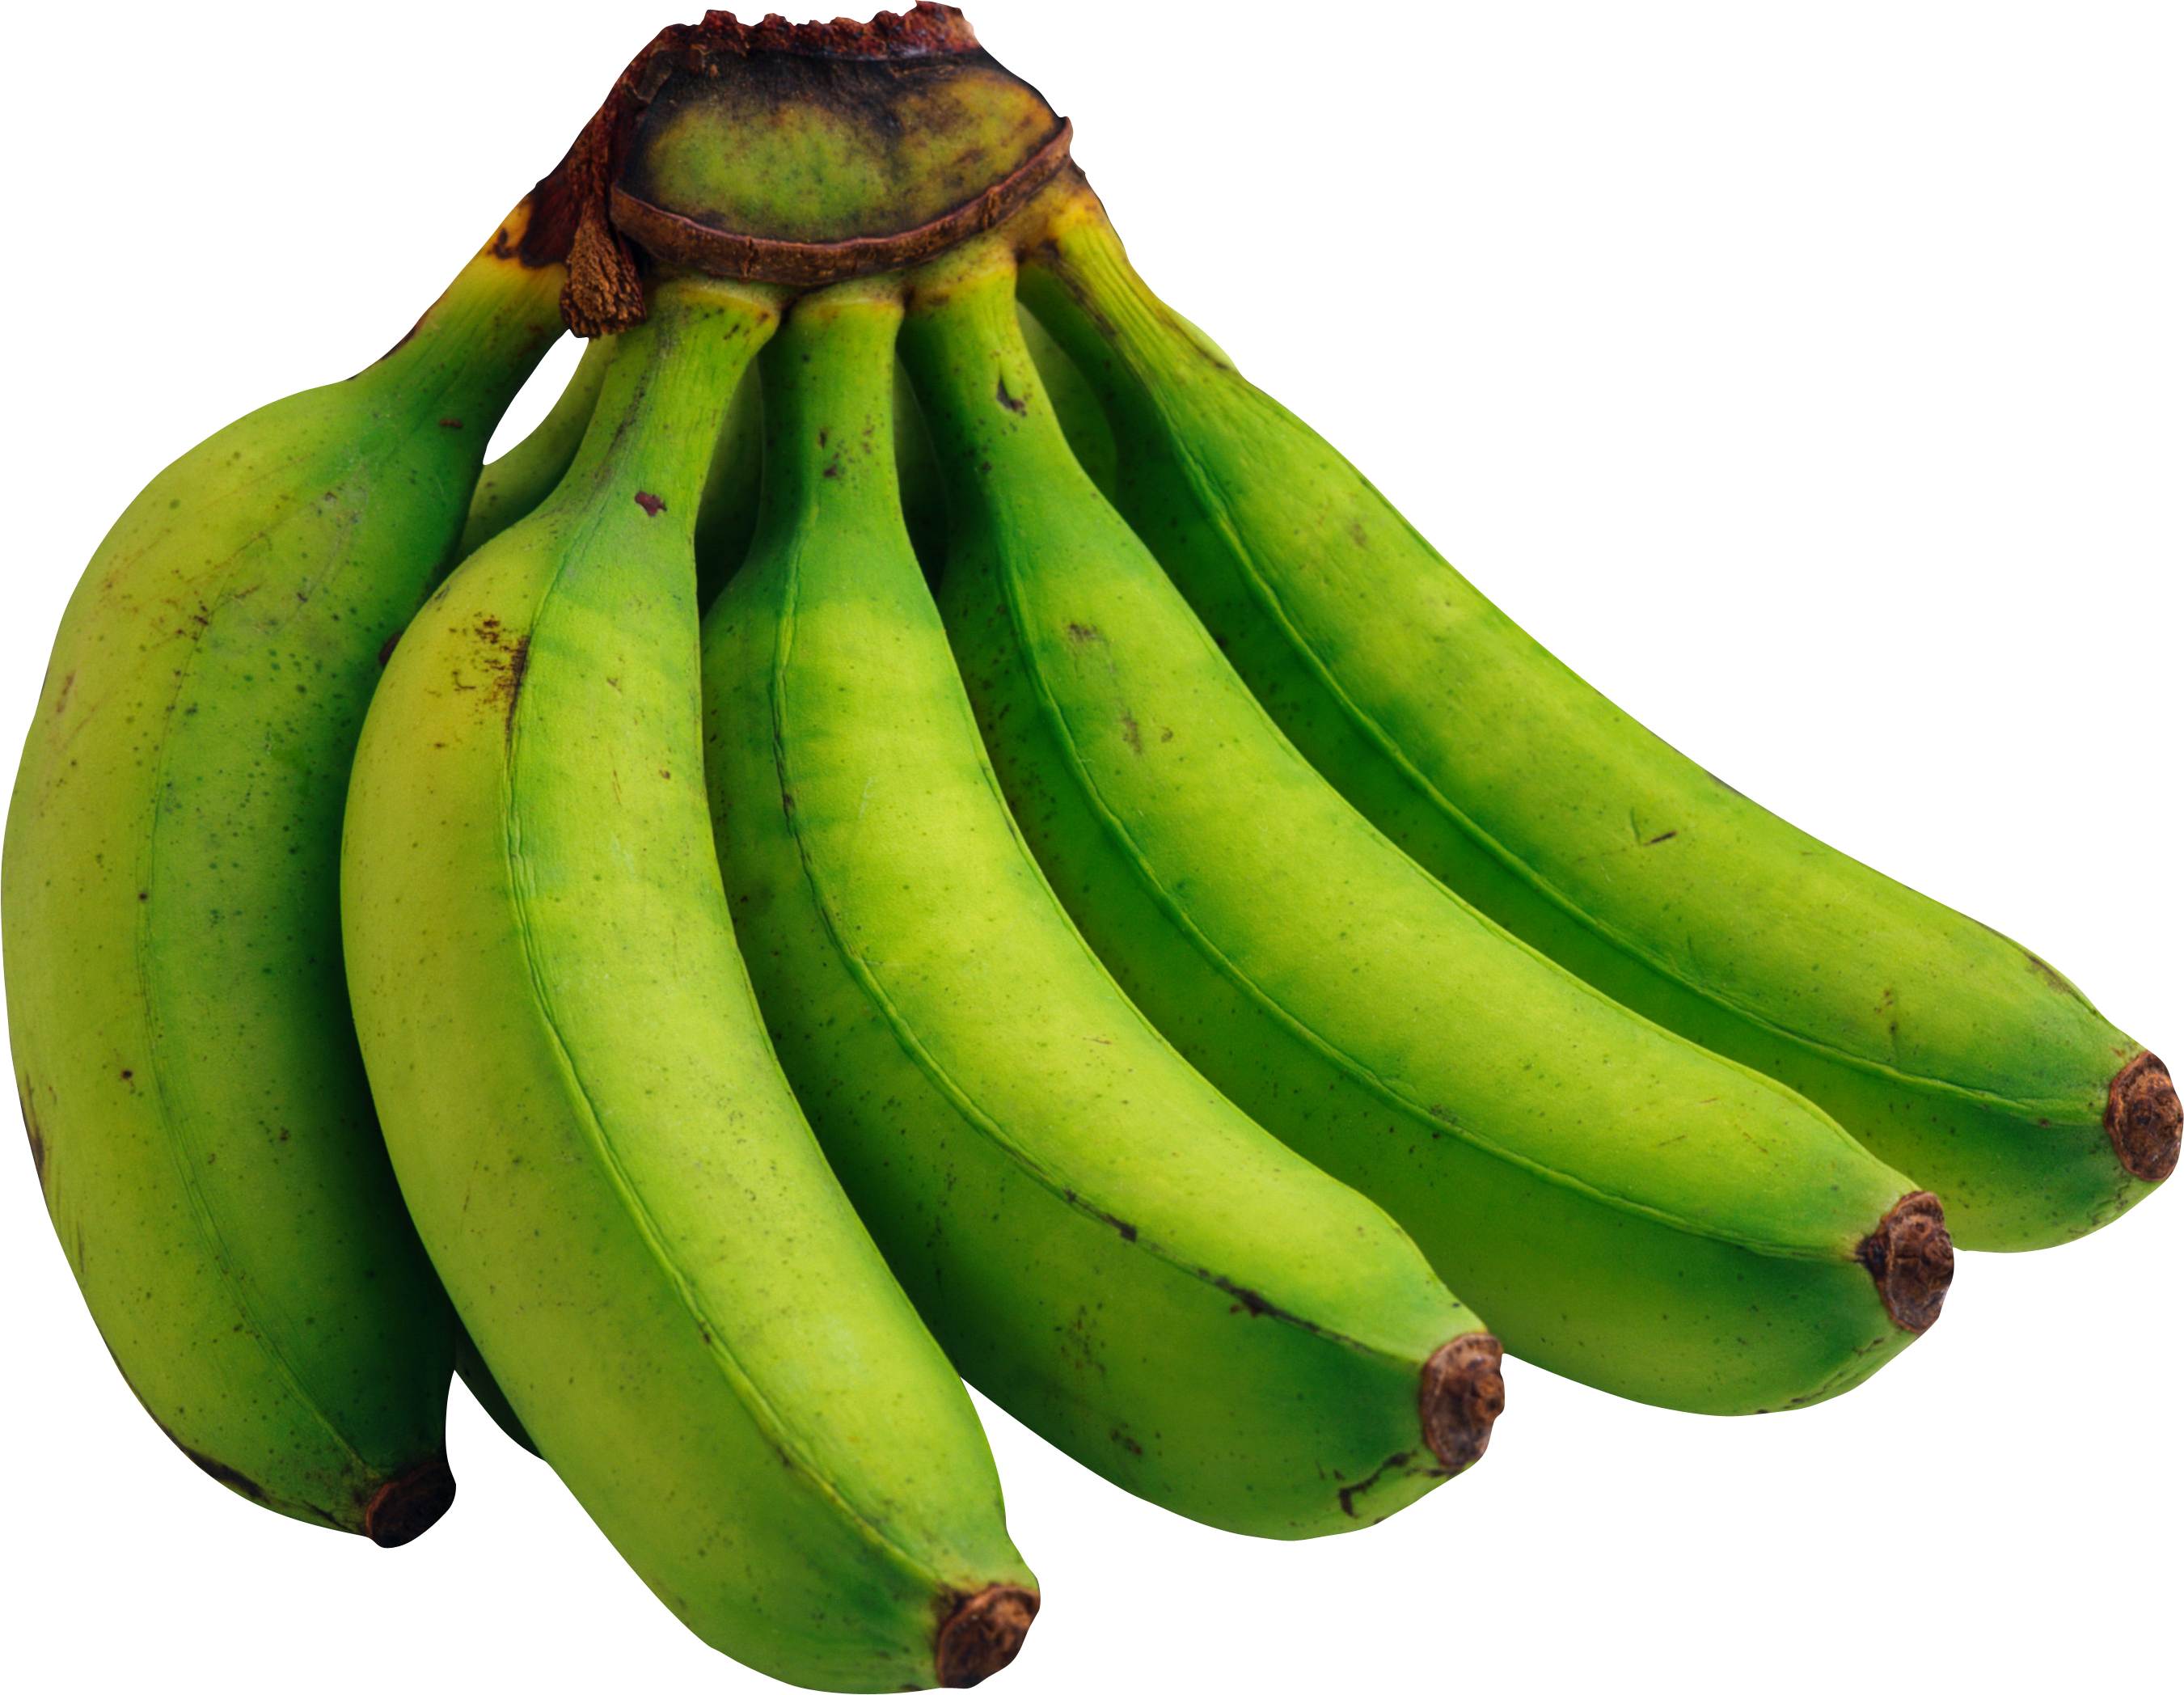 Bananas transparent green. Png image free picture